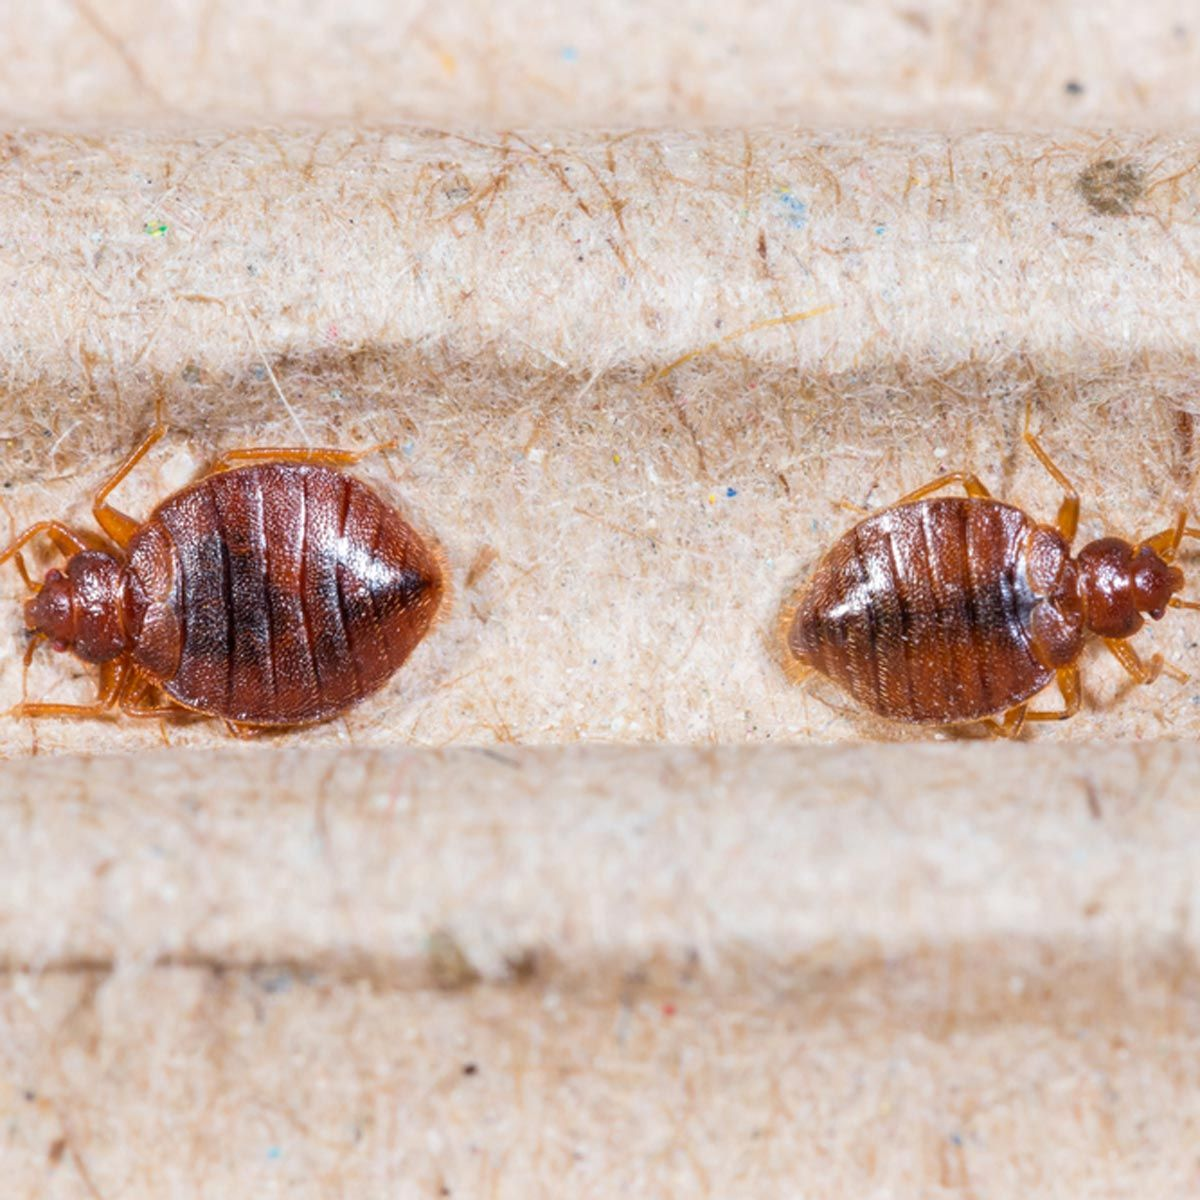 Home Pest Control Follow These Steps To Avoid A Bed Bug Infestationa Bed Bug Infestation Is A Challenge To Bed Bugs Infestation Bed Bugs Bed Bugs Treatment